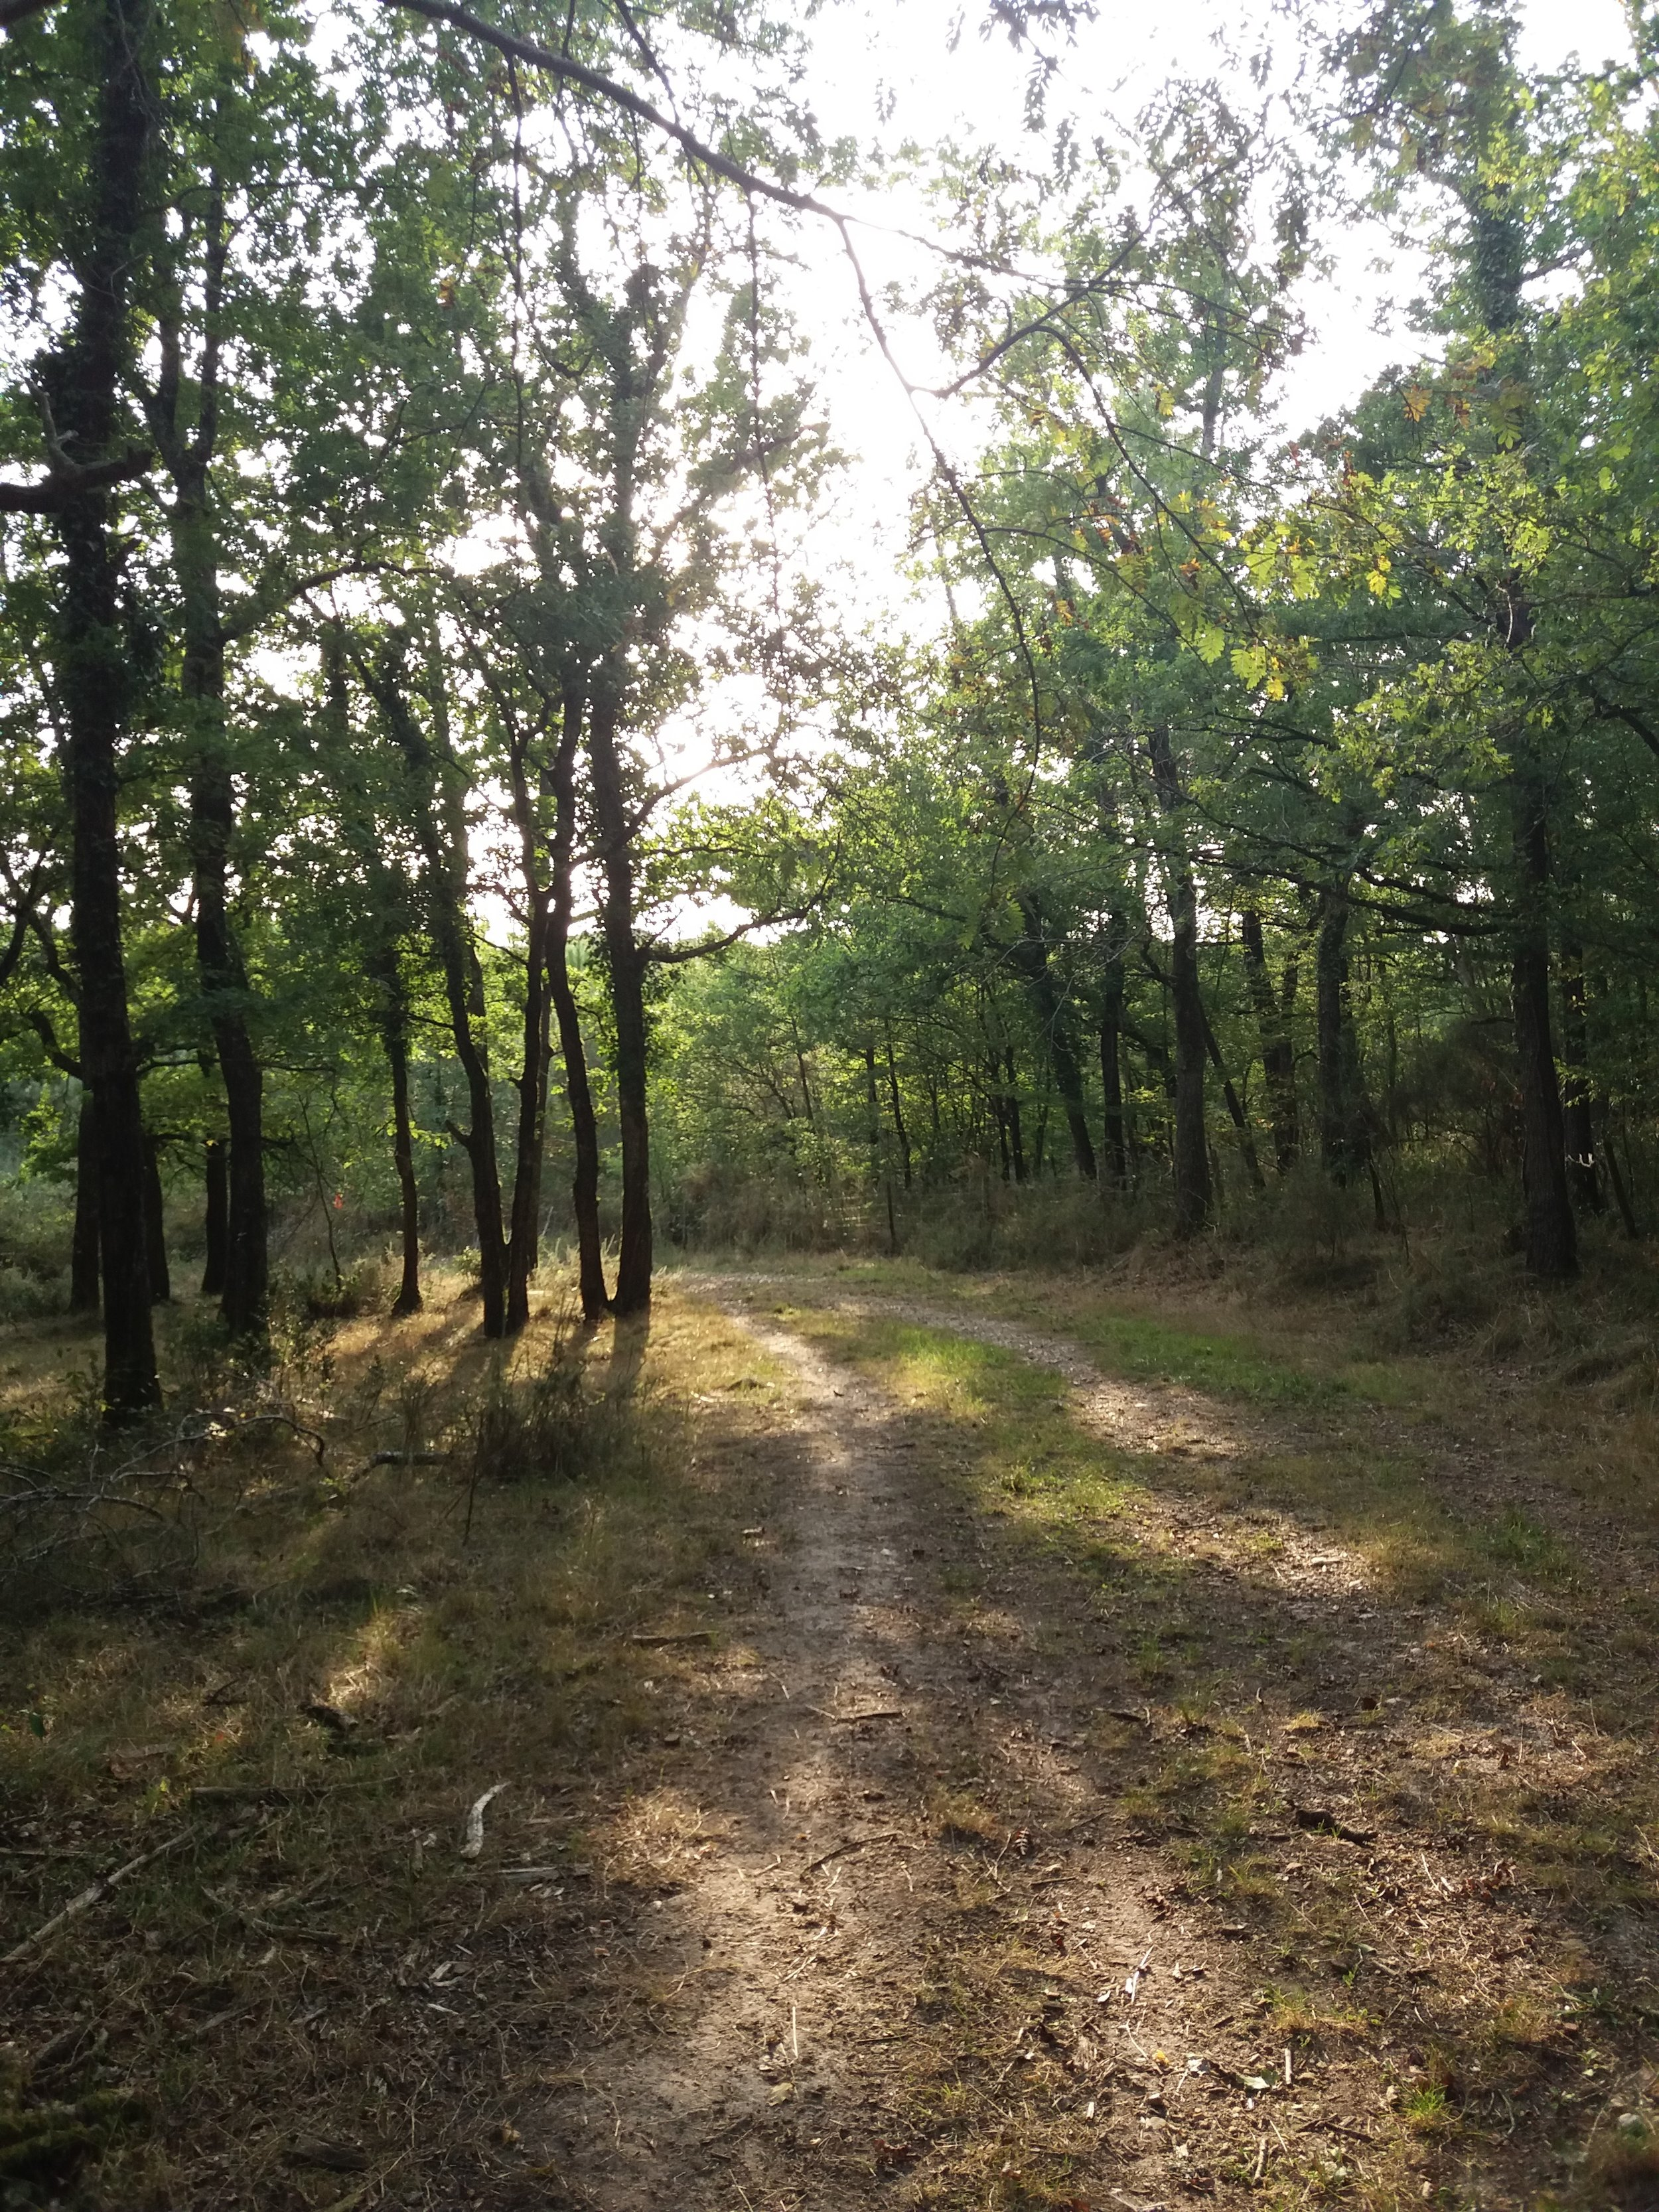 Maintained paths make exploring the woods easy